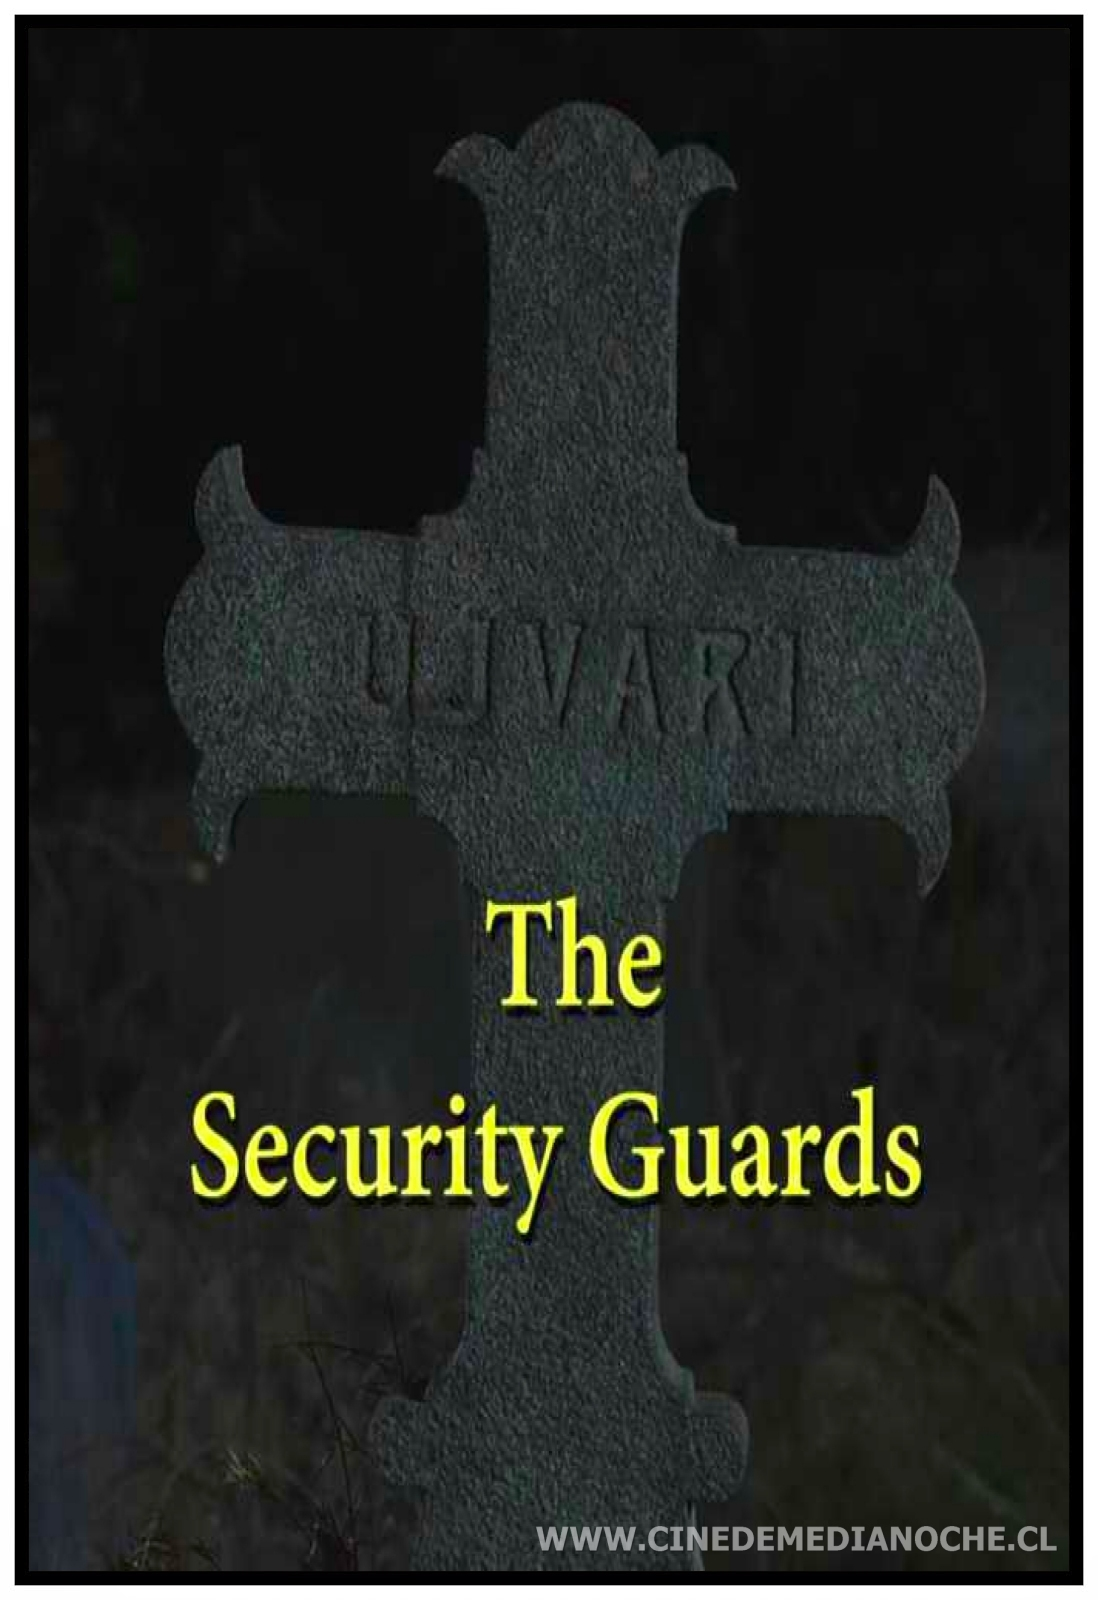 http://www.cinedemedianoche.cl/2016/10/the-security-guards-2014-cortometraje.html